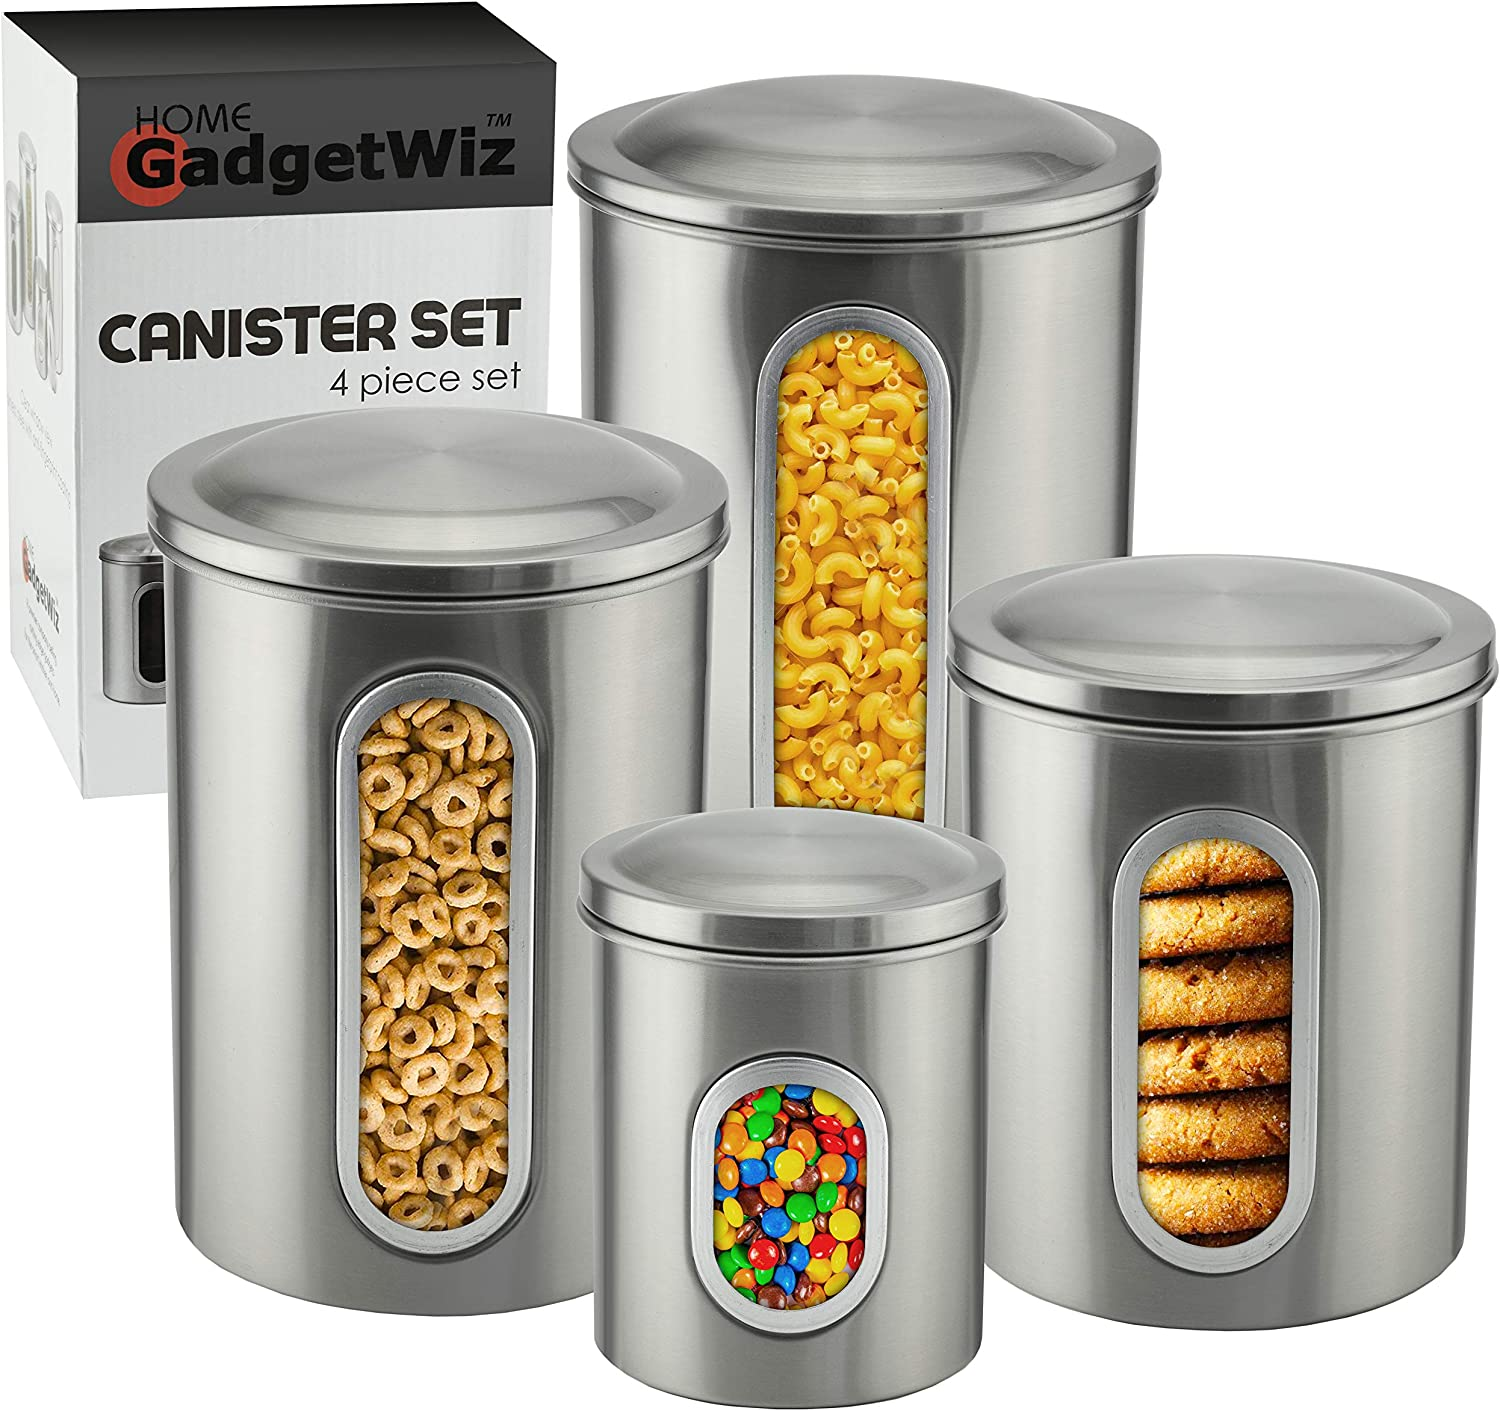 Canister Sets for the Kitchen - Brushed Stainless Steel - Anti fingerprint Coating - Sugar and Flour Canisters Set of 4 - Food Storage Containers